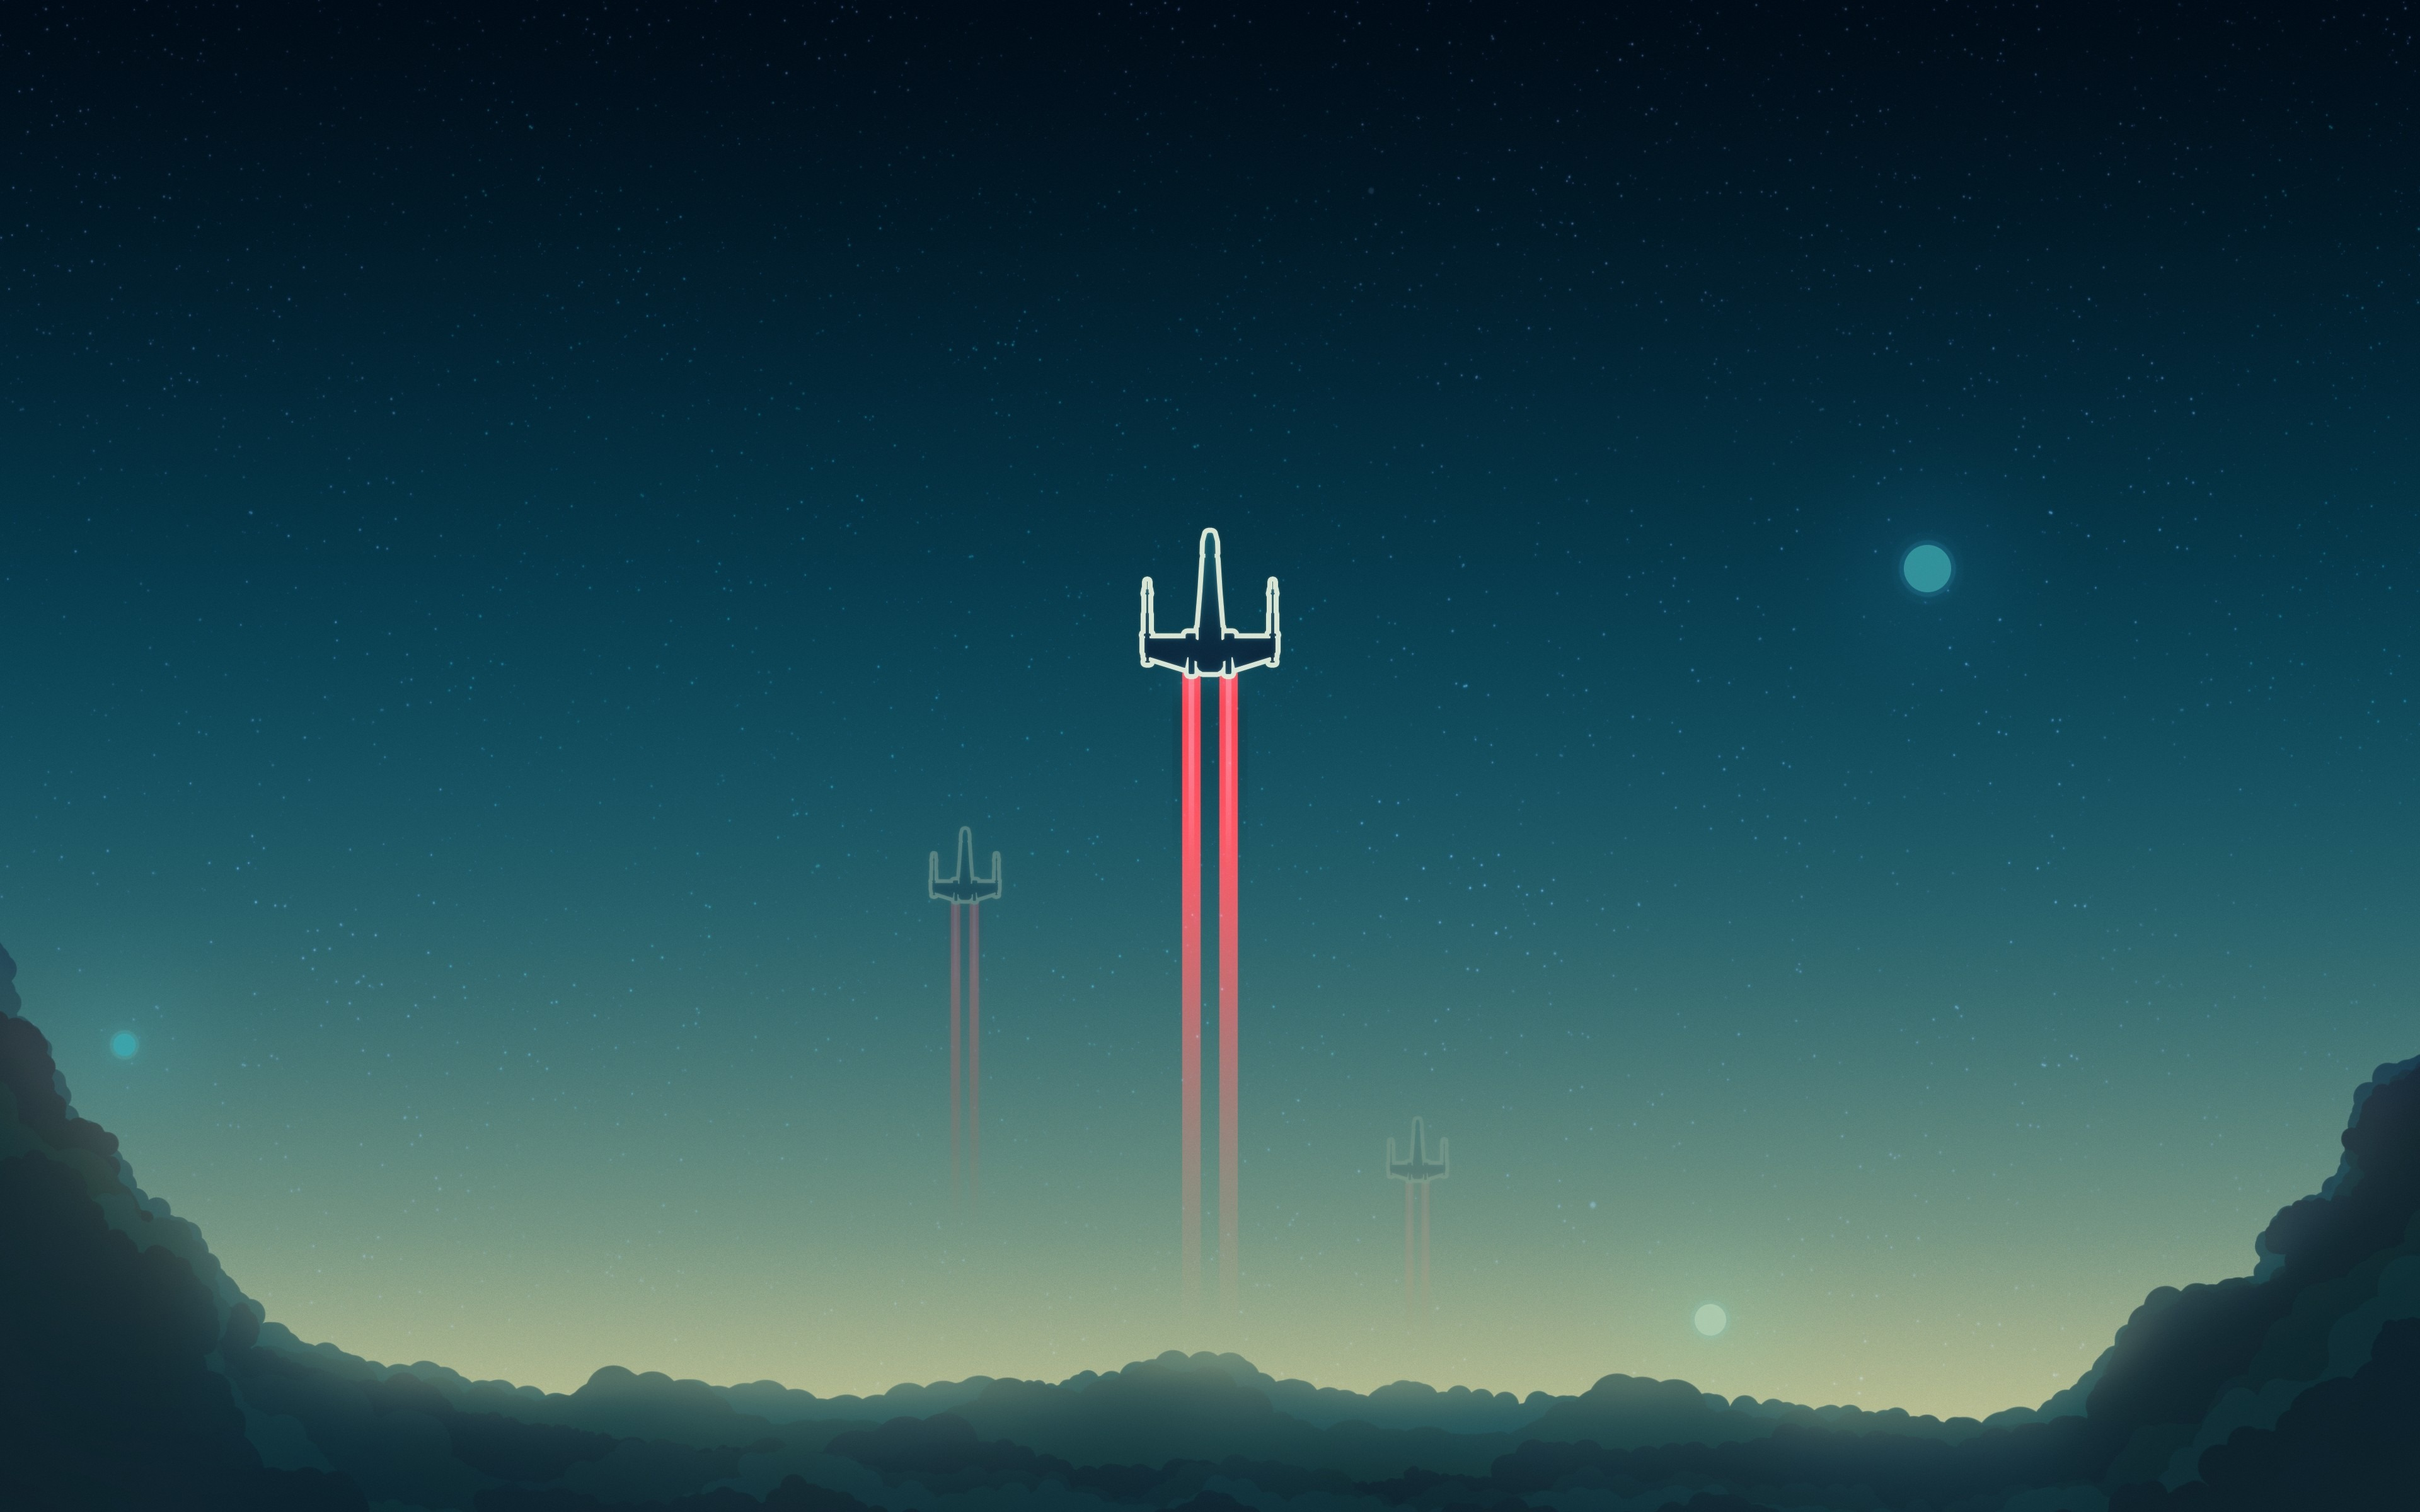 Download 3840x2400 Wallpaper X Wing Spacecraft Aircraft Star Wars Starfighter Video Game Minimal 4k Ultra Hd 16 10 Widescreen 3840x2400 Hd Image Background 1760